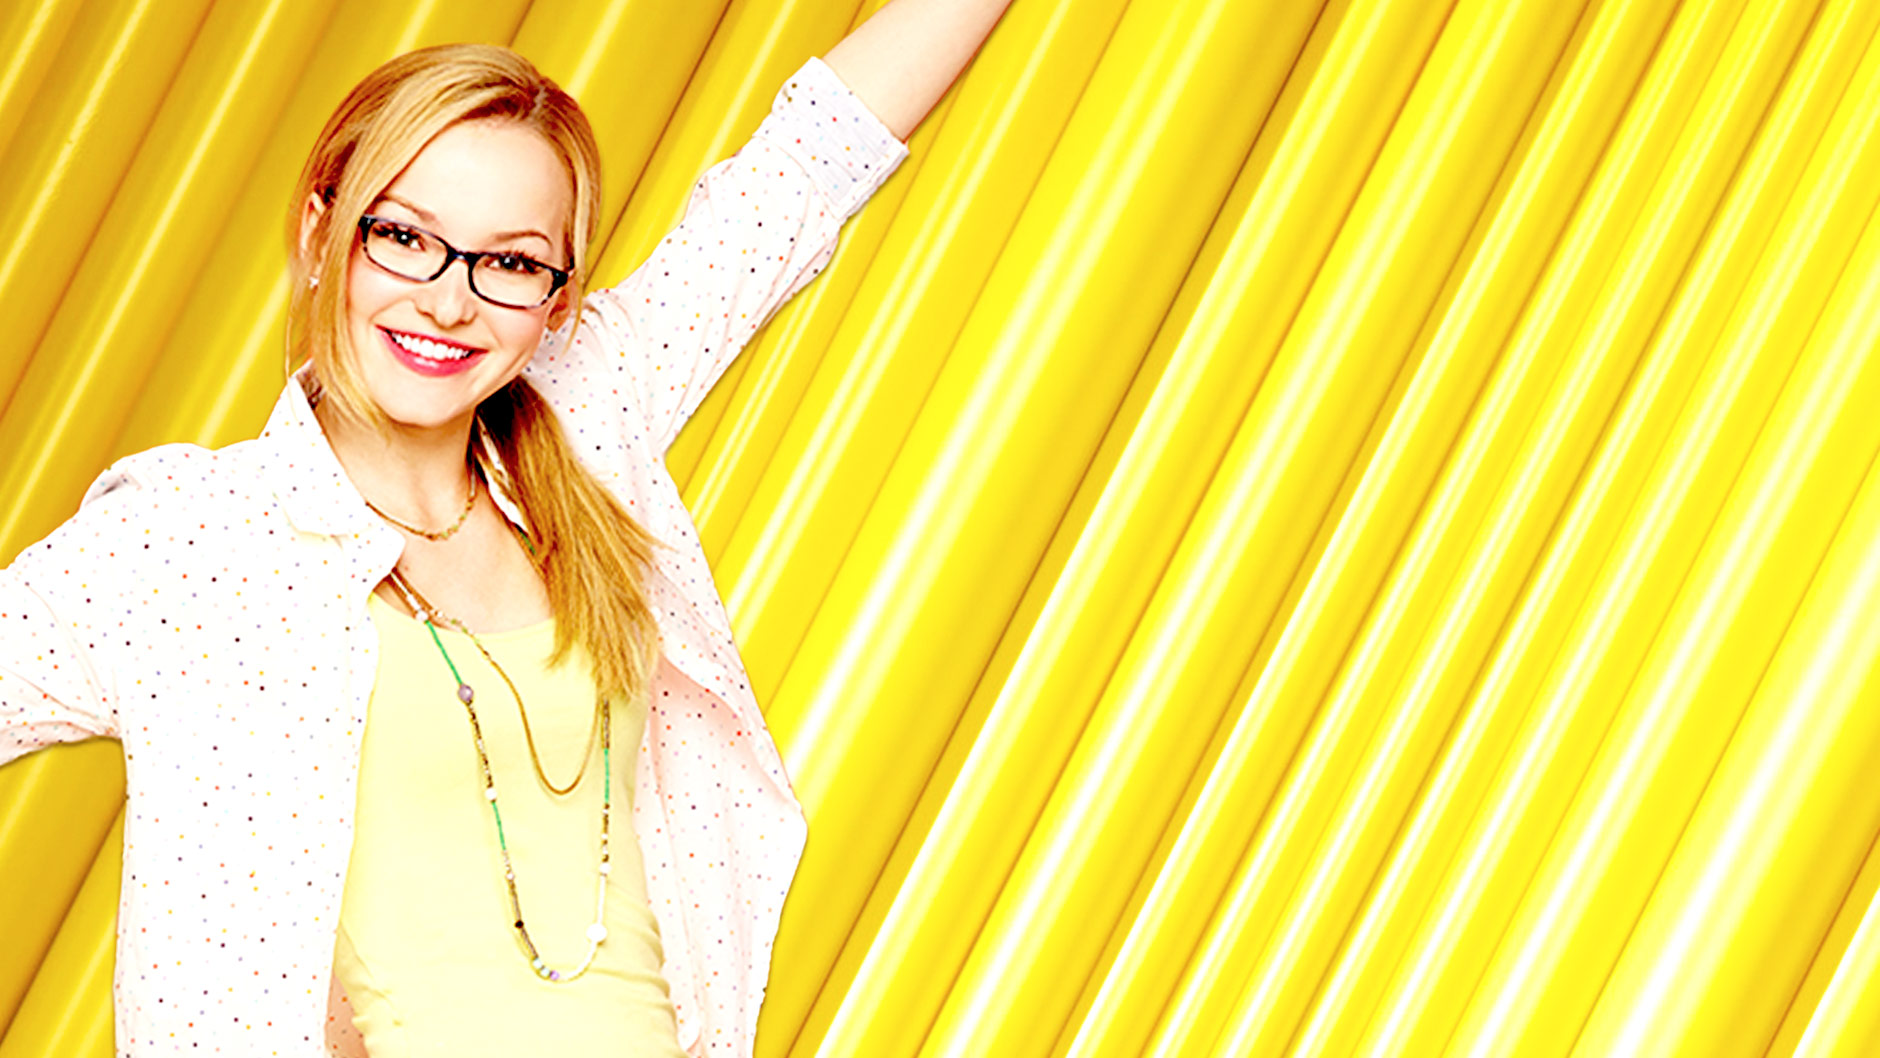 Disney channel coloring pages liv and maddie - Disney Channel Coloring Pages Liv And Maddie 15